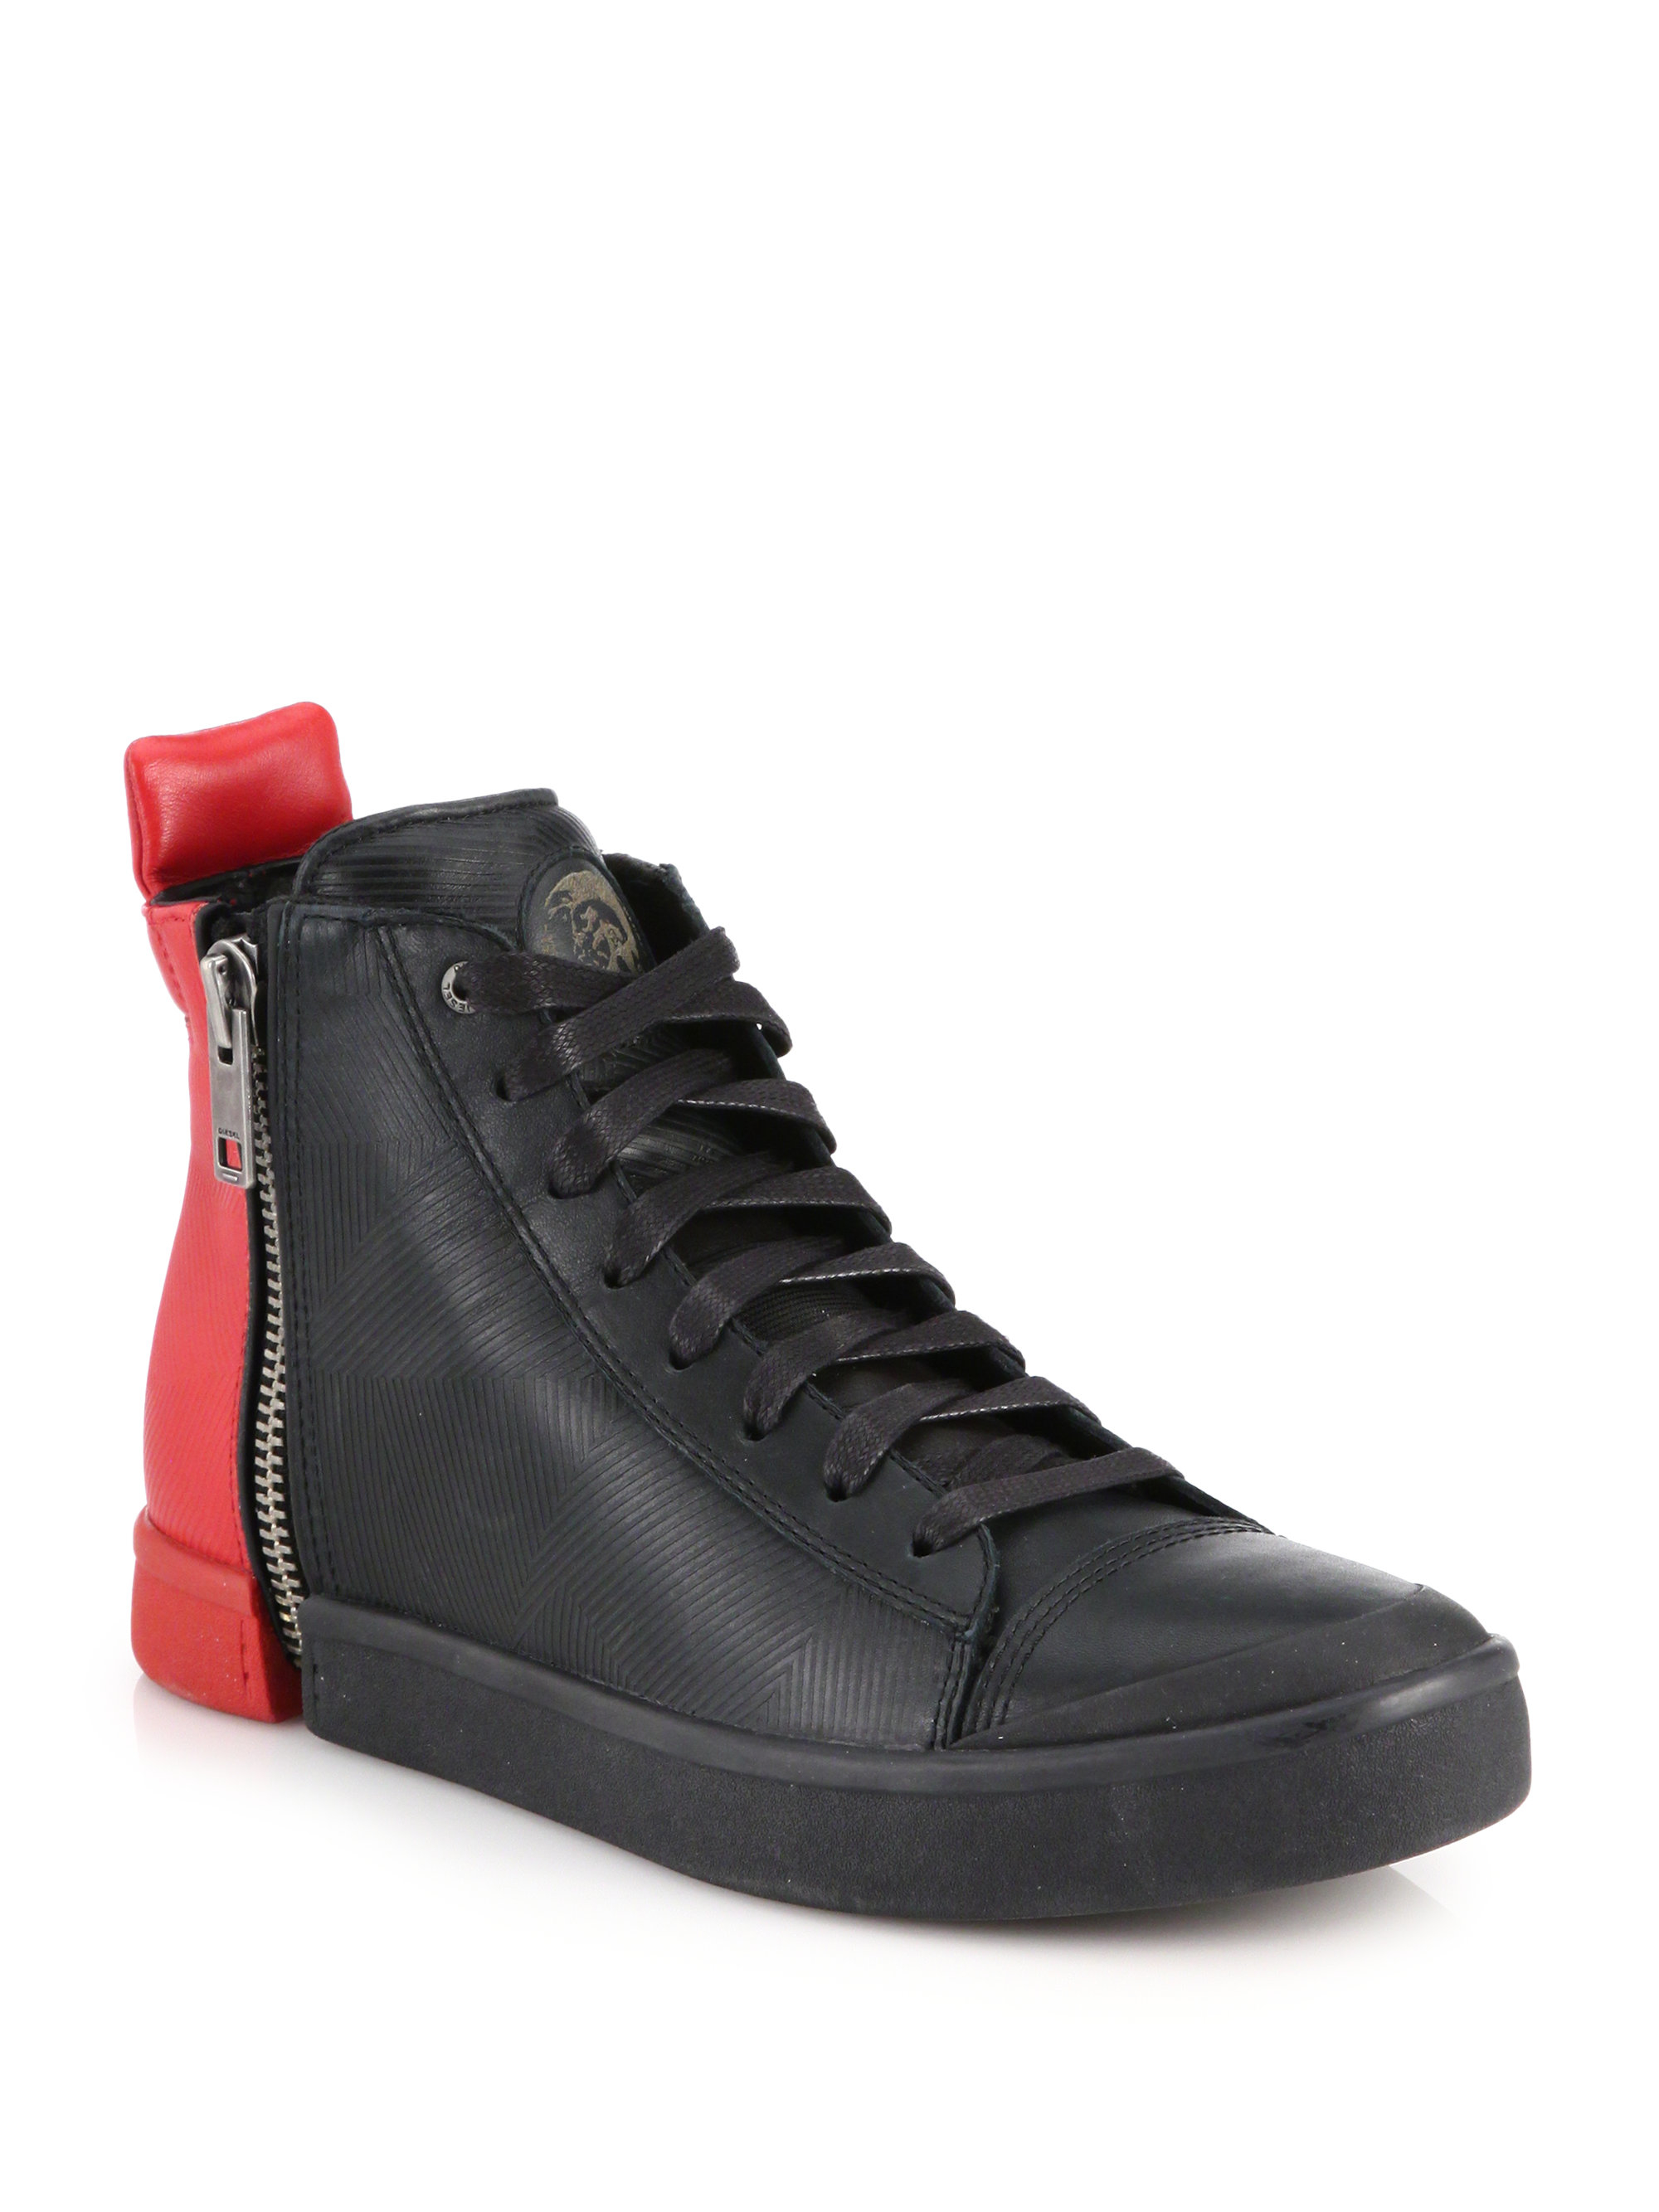 diesel colorblocked zipped leather hightop sneakers in